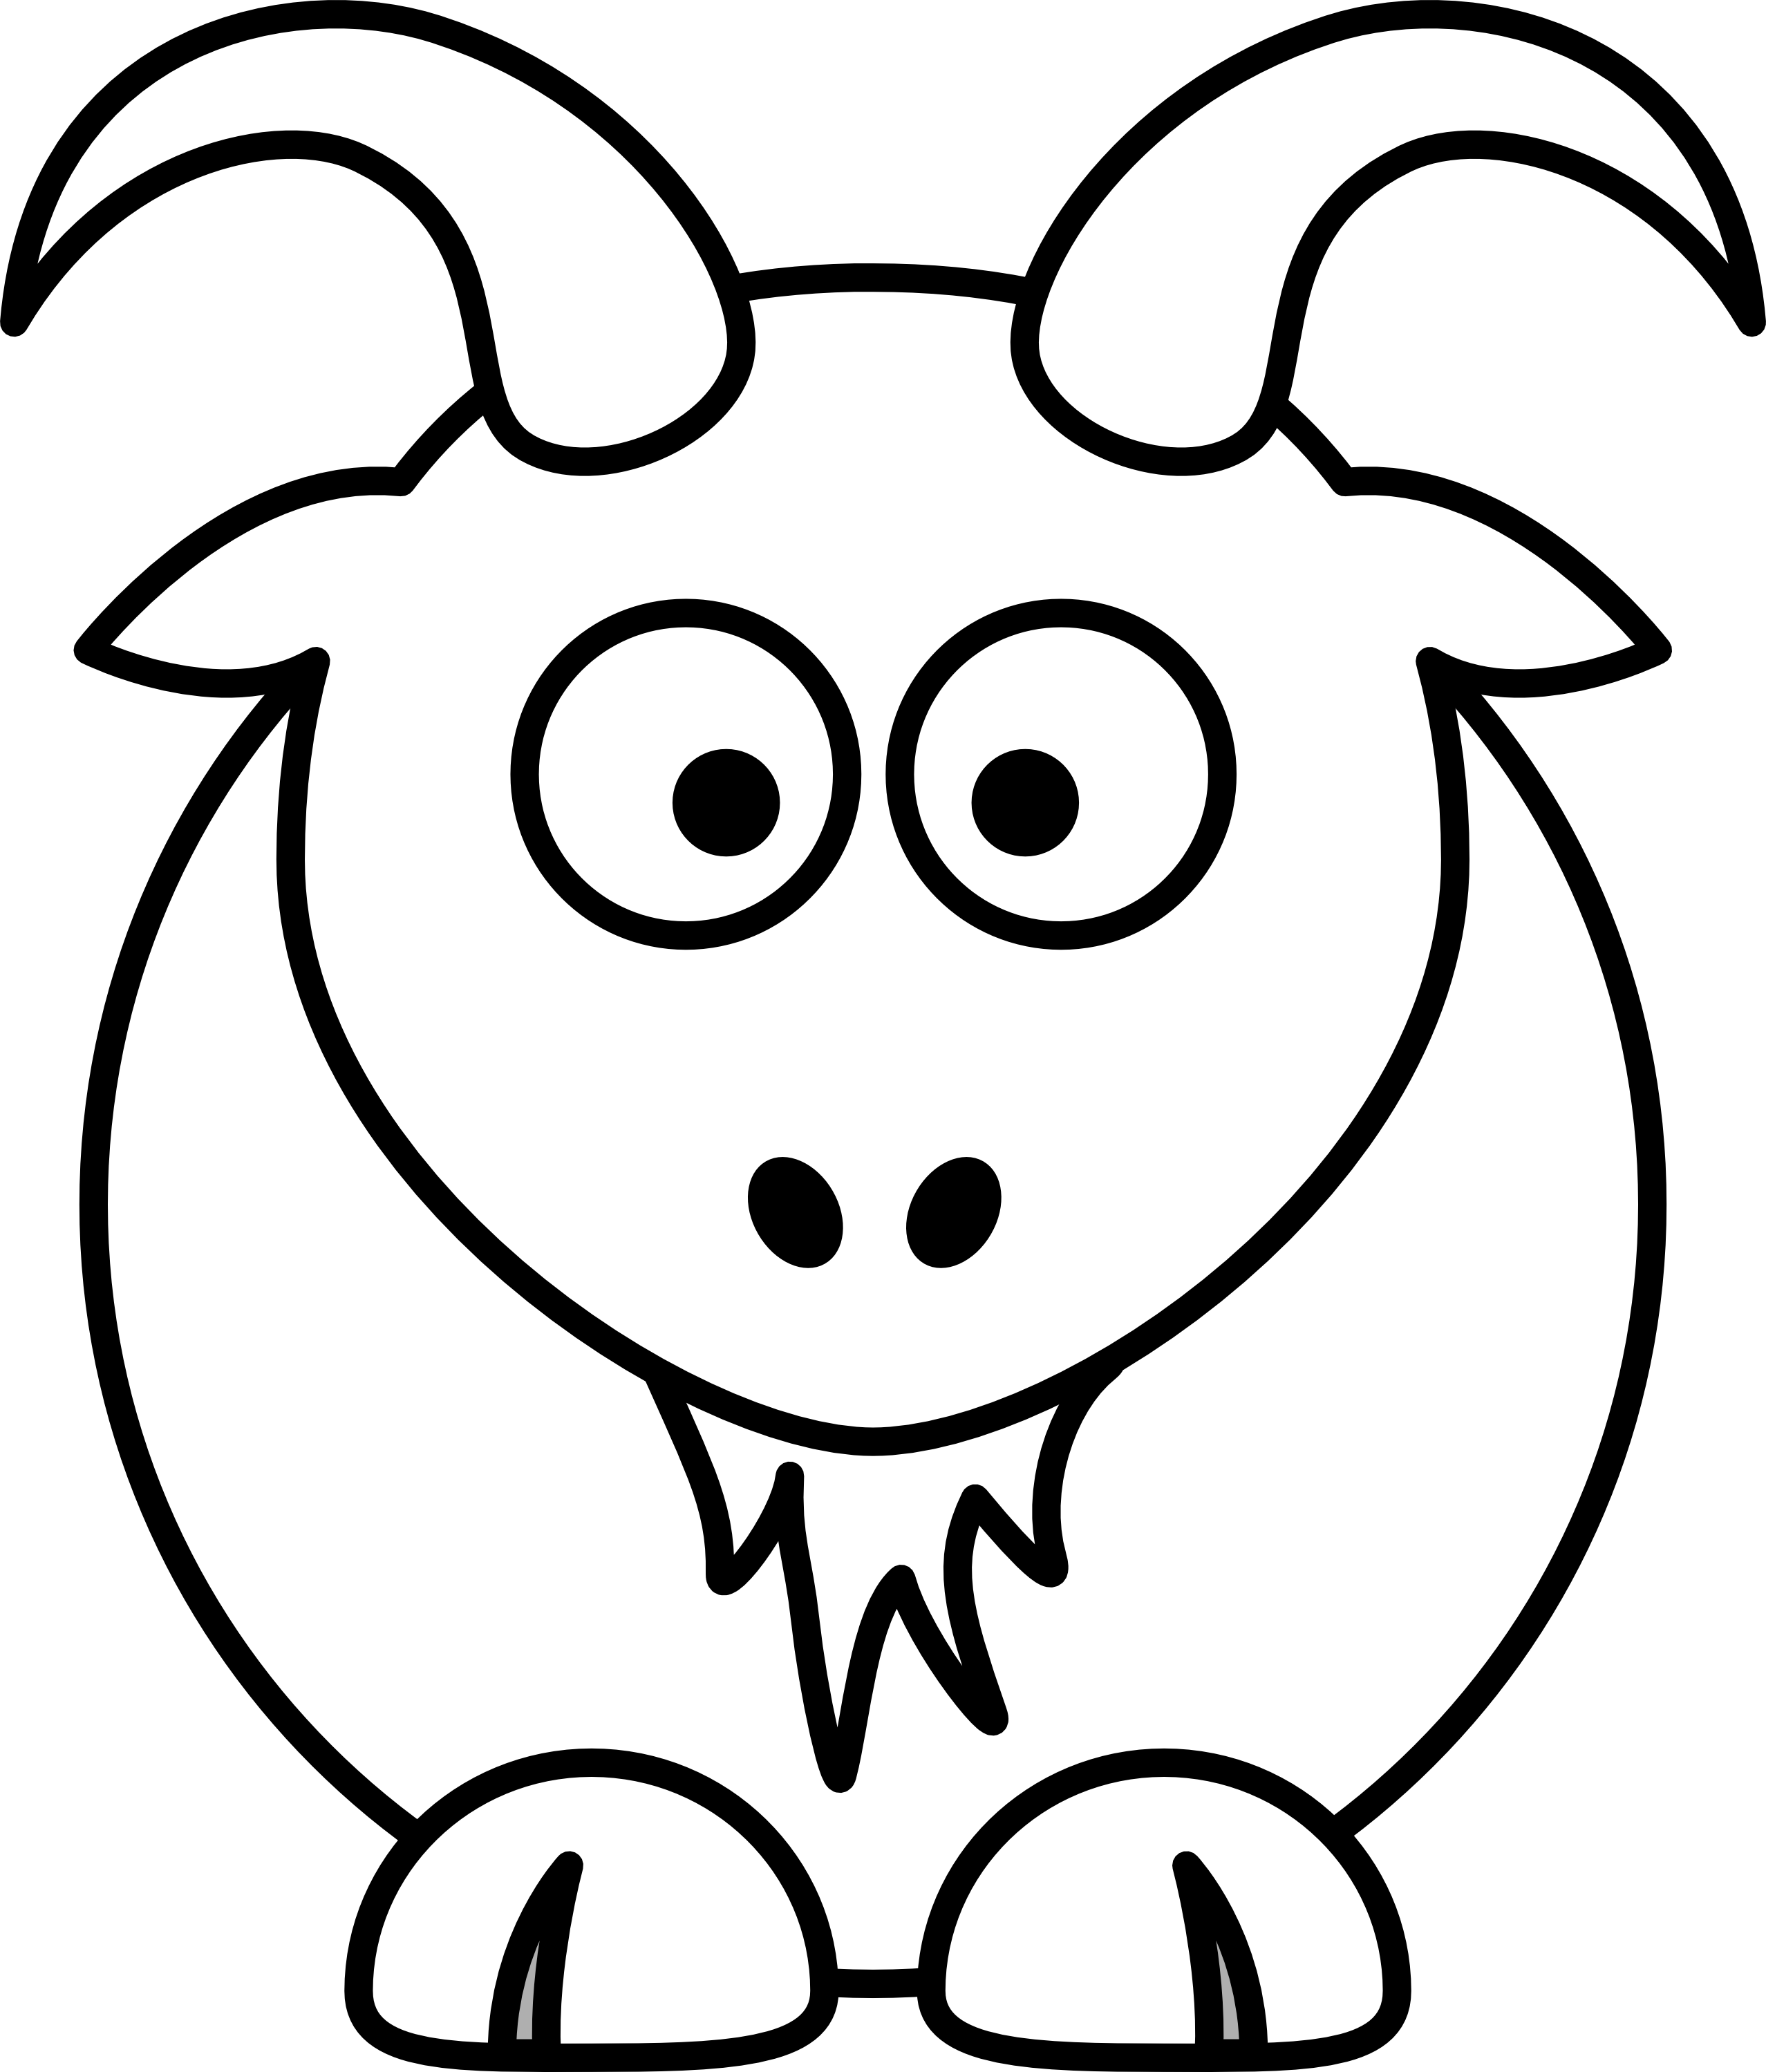 Goat clip art black and white.